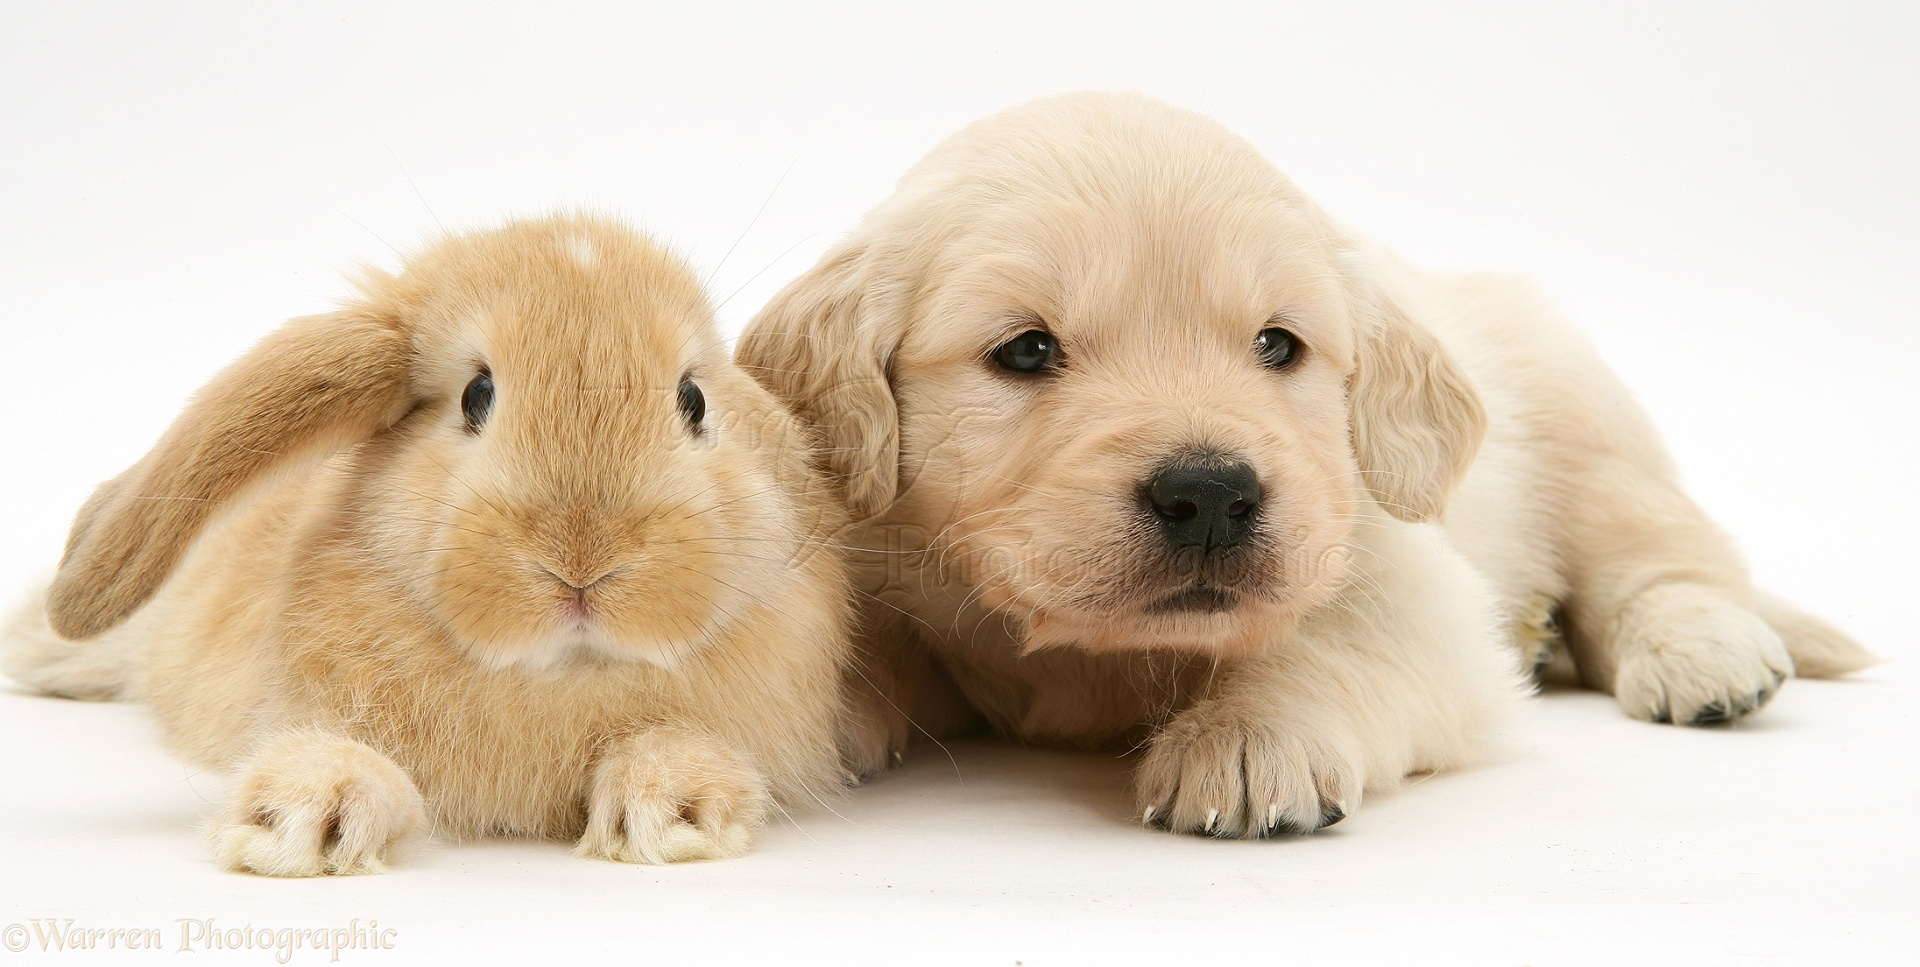 Pets: Baby sandy Lop rabbit with Golden Retriever pup photo - WP10580 Golden Retriever And Baby